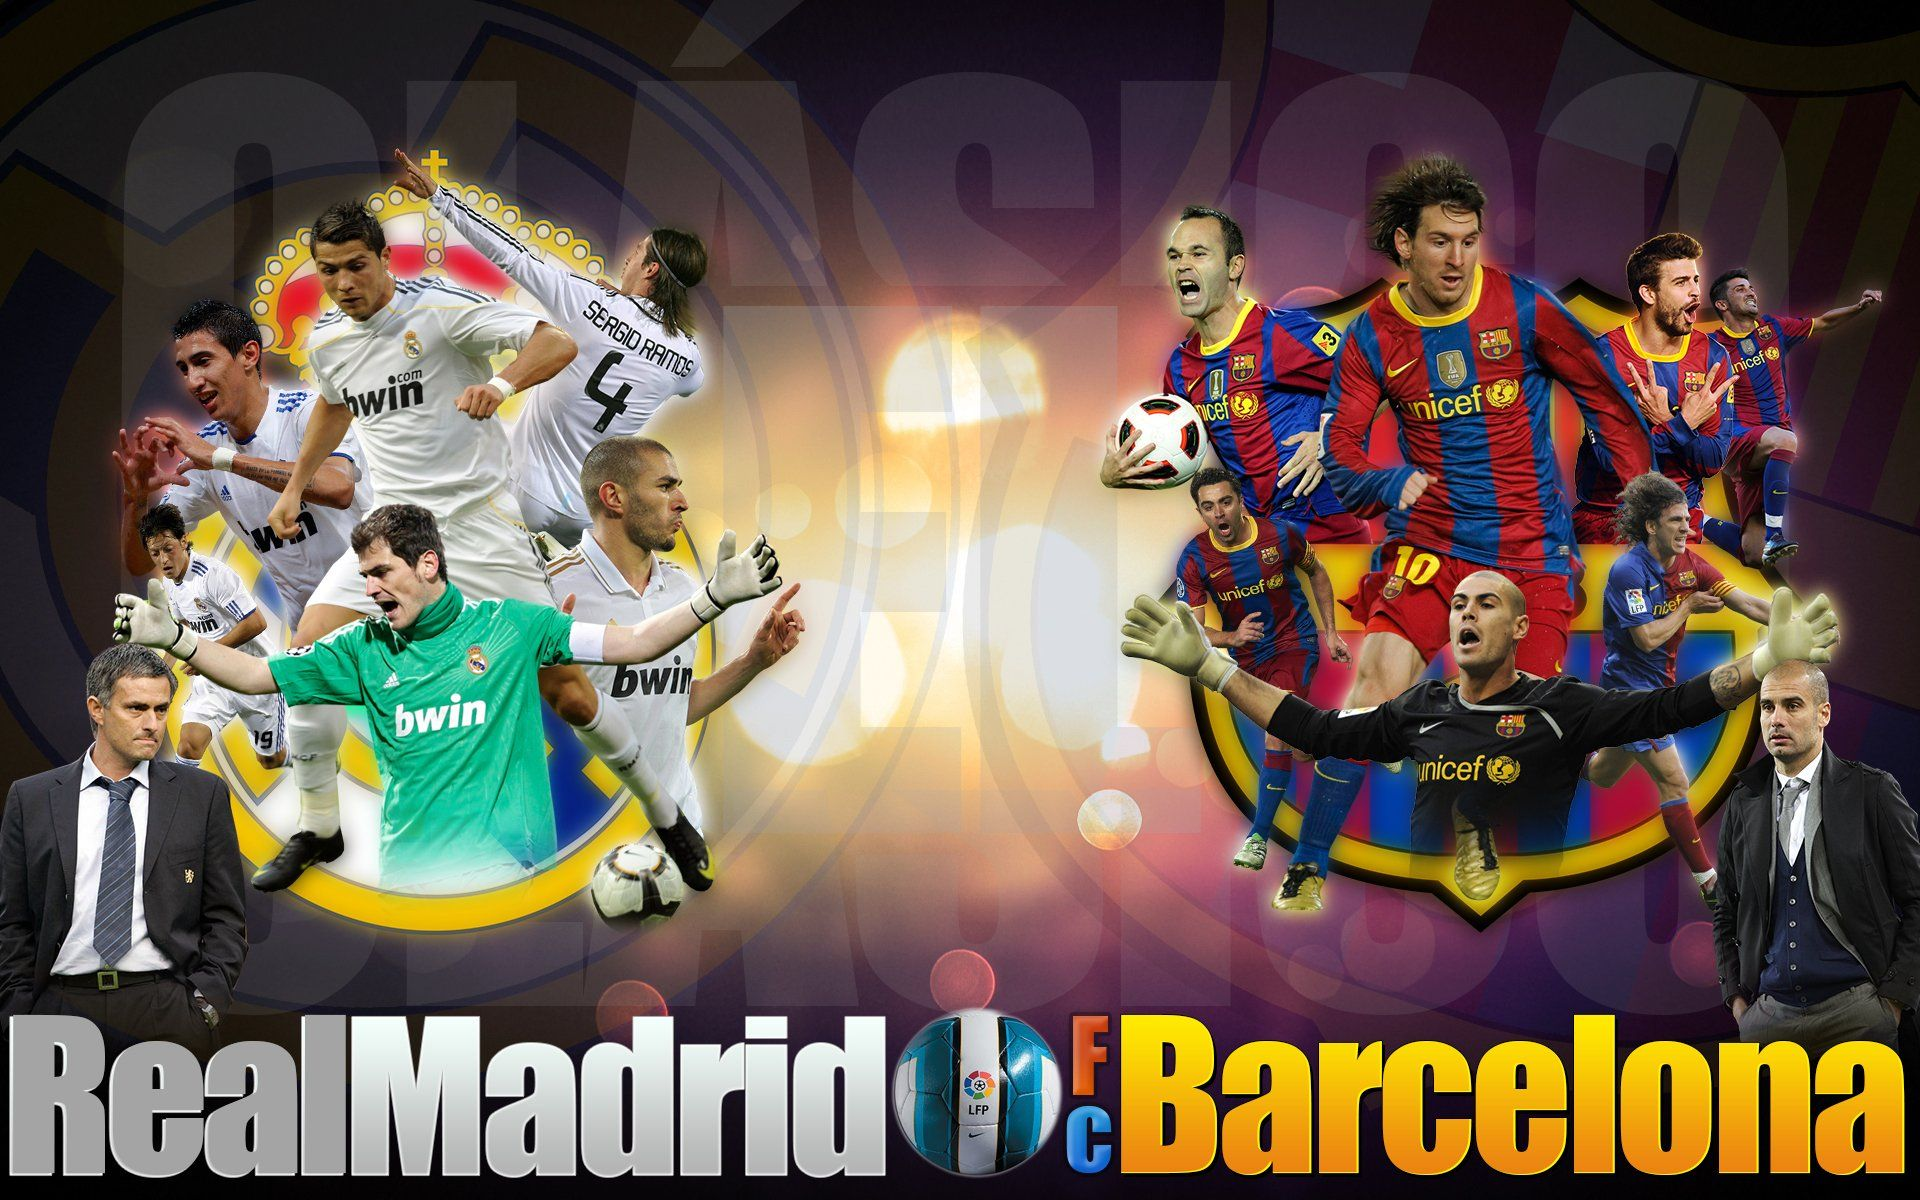 Barcelona Vs Real Madrid Hd Wallpapers Images Pics 1920 1080 Real Madrid Vs Barcelona Wallpapers 37 Wallpape Barcelona Vs Real Madrid Barcelona Real Madrid